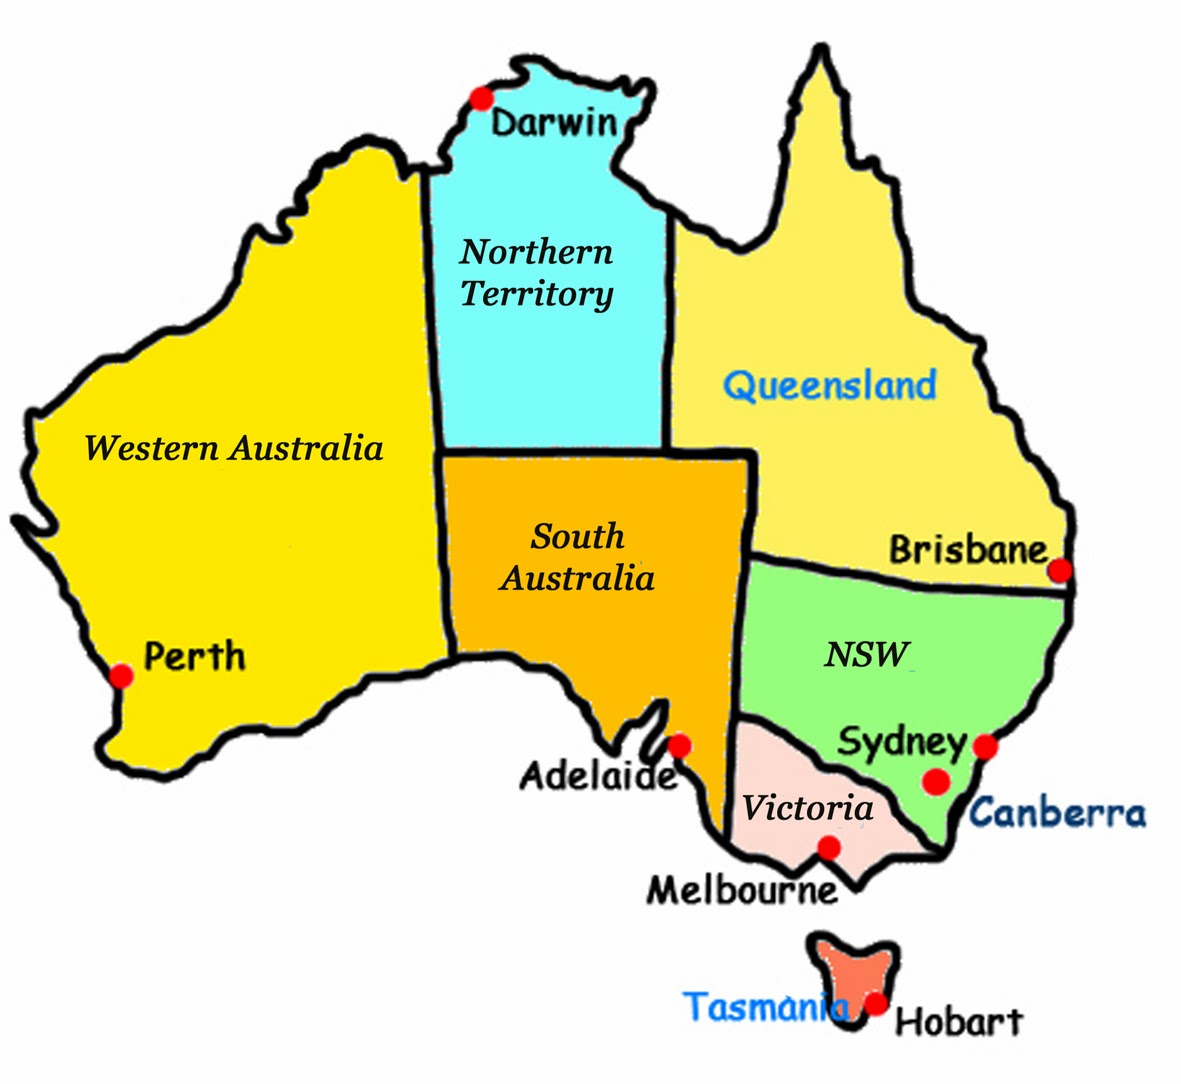 Australian states clipart picture download Australian states clipart - ClipartFest picture download